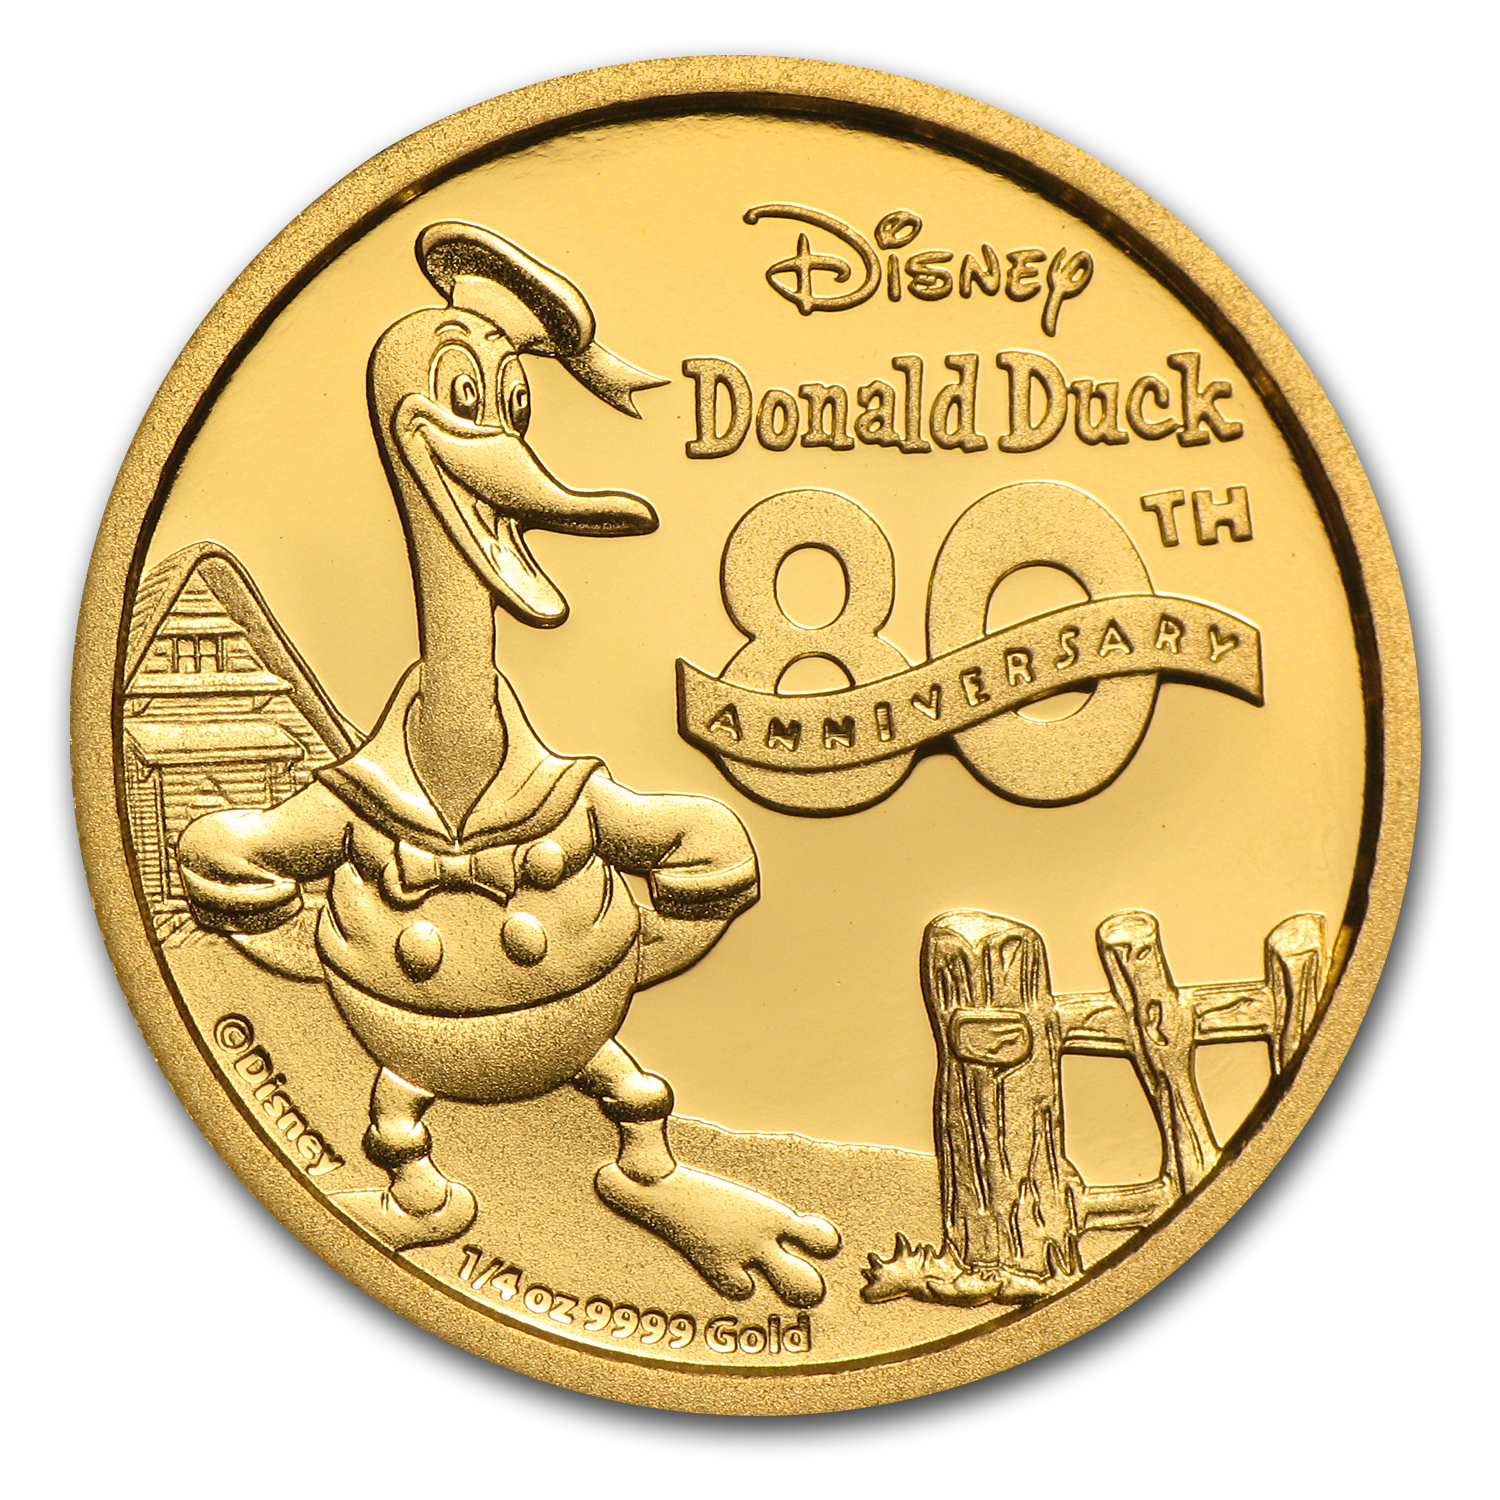 2014 Niue 1/4 oz Proof Gold $25 Disney Donald Duck